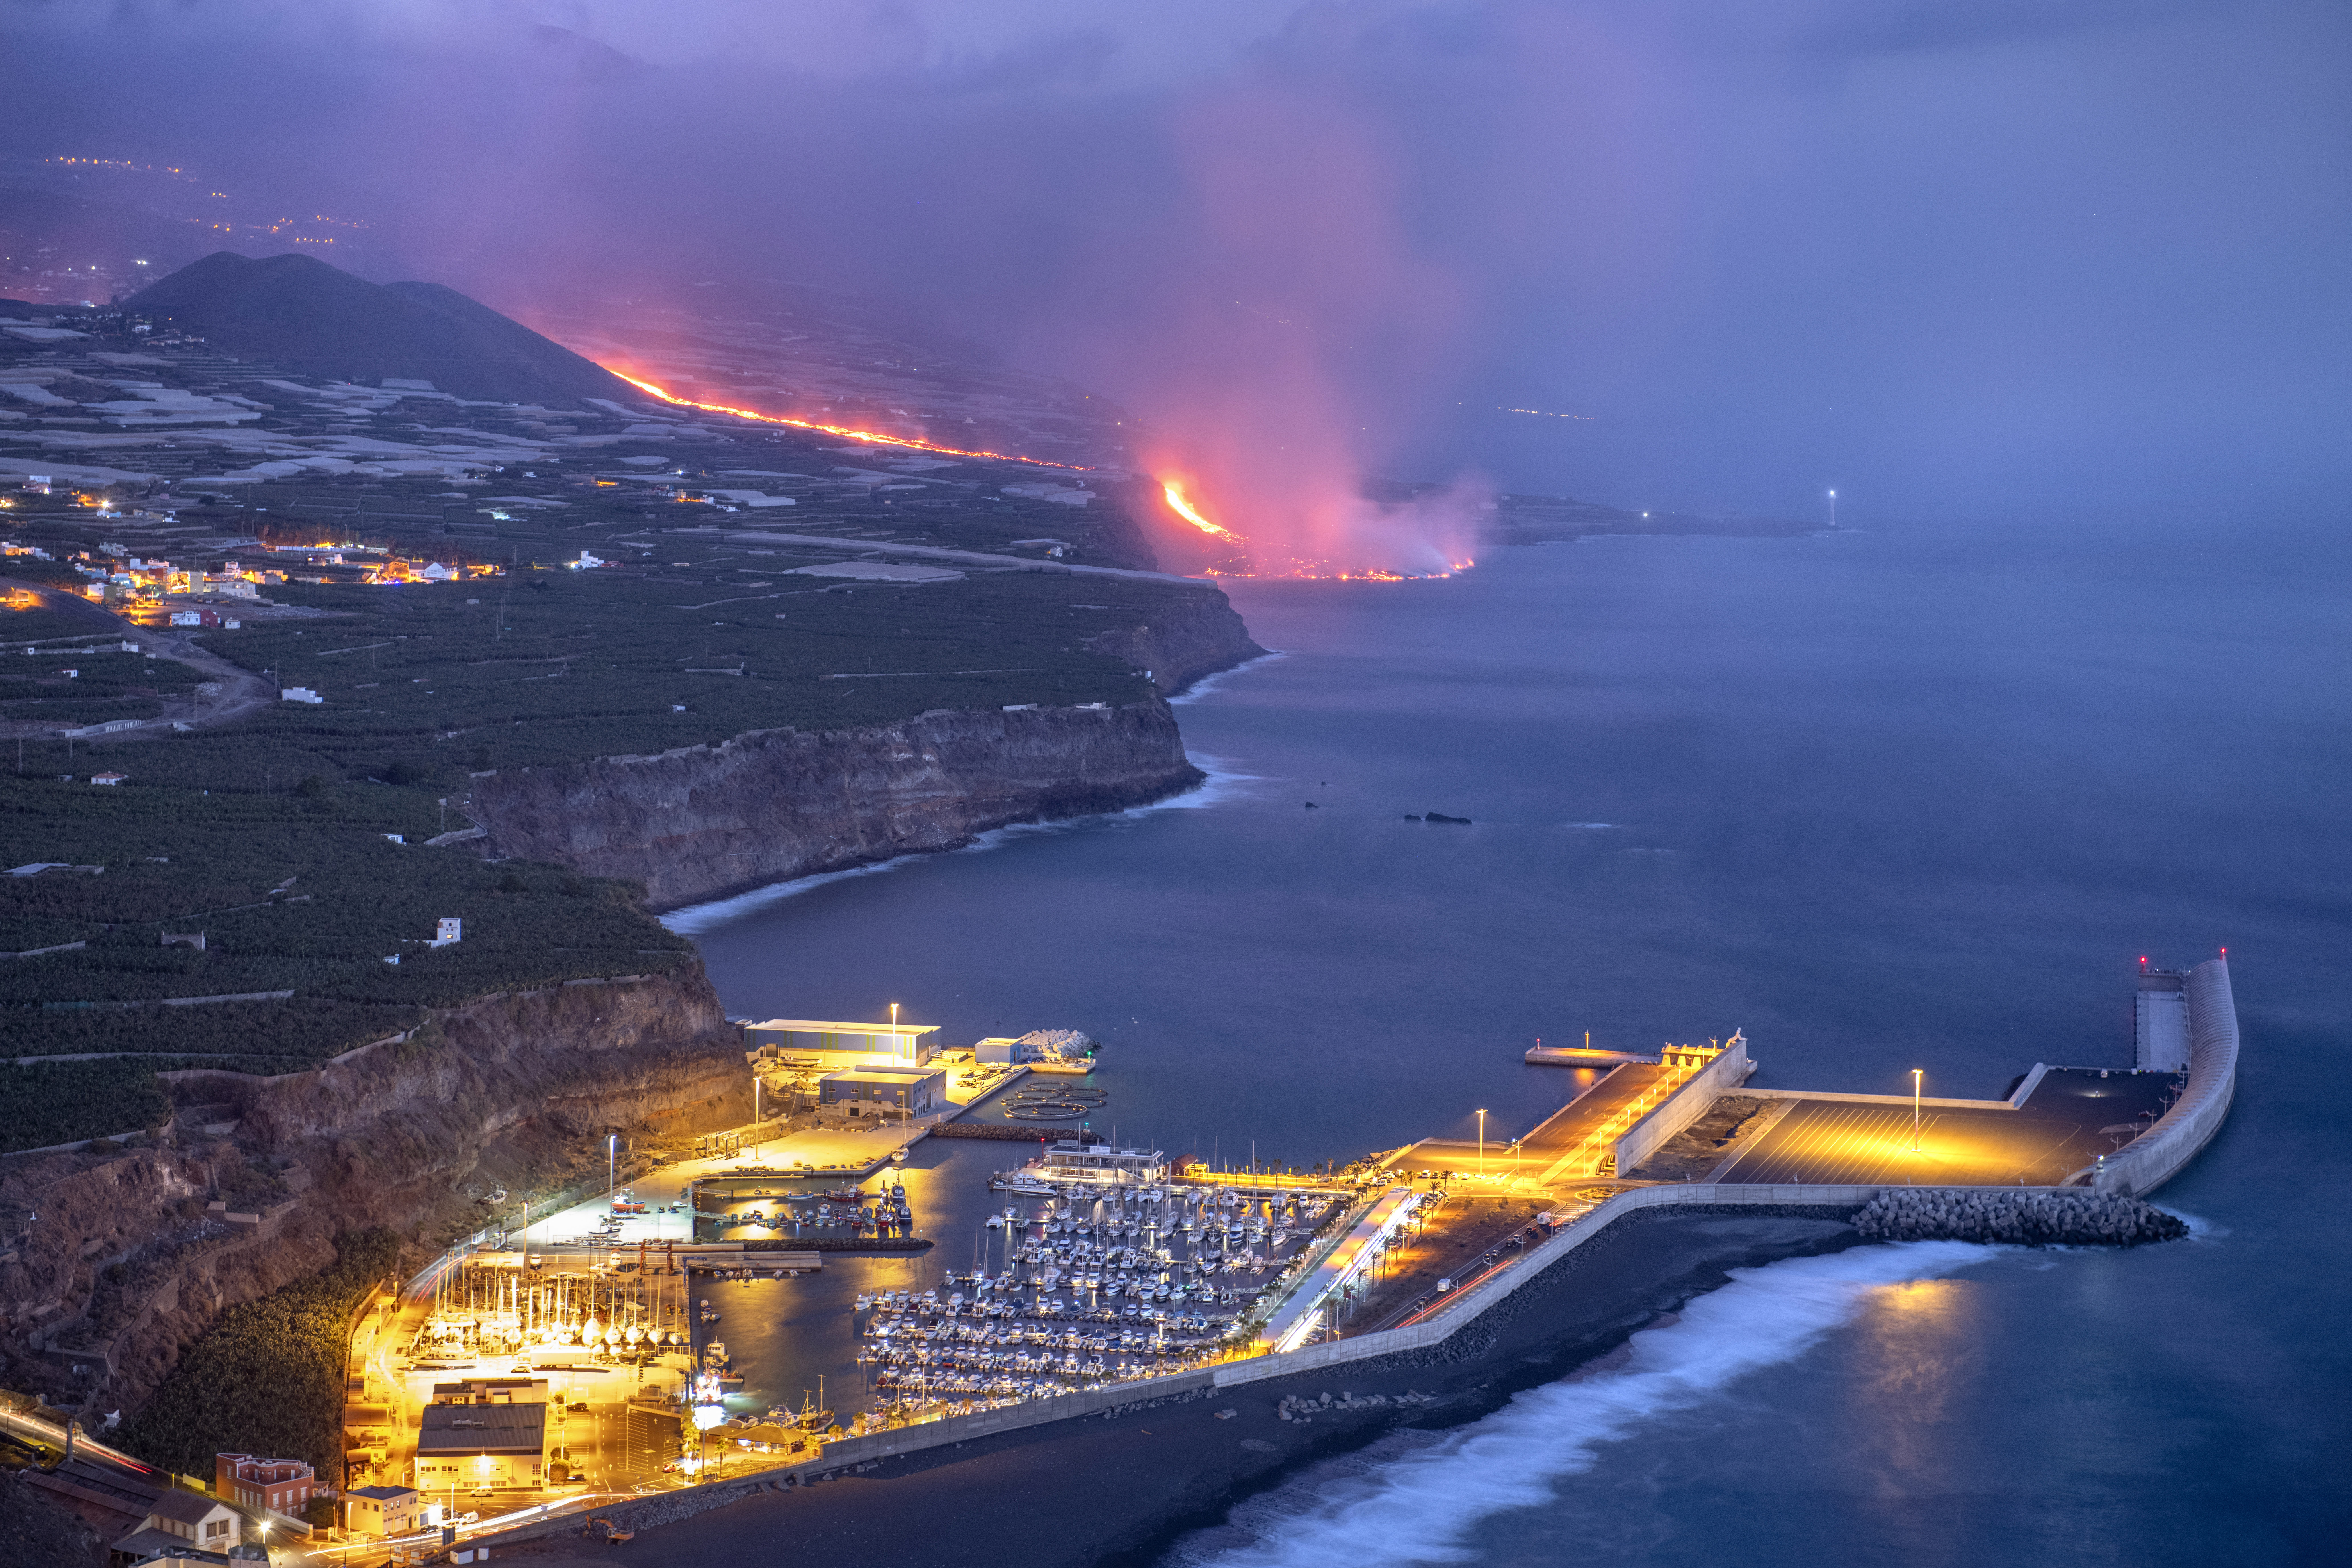 A volcano on Spains Canary Islands wiped out hundreds of homes and forcing the evacuation of thousands of residents.